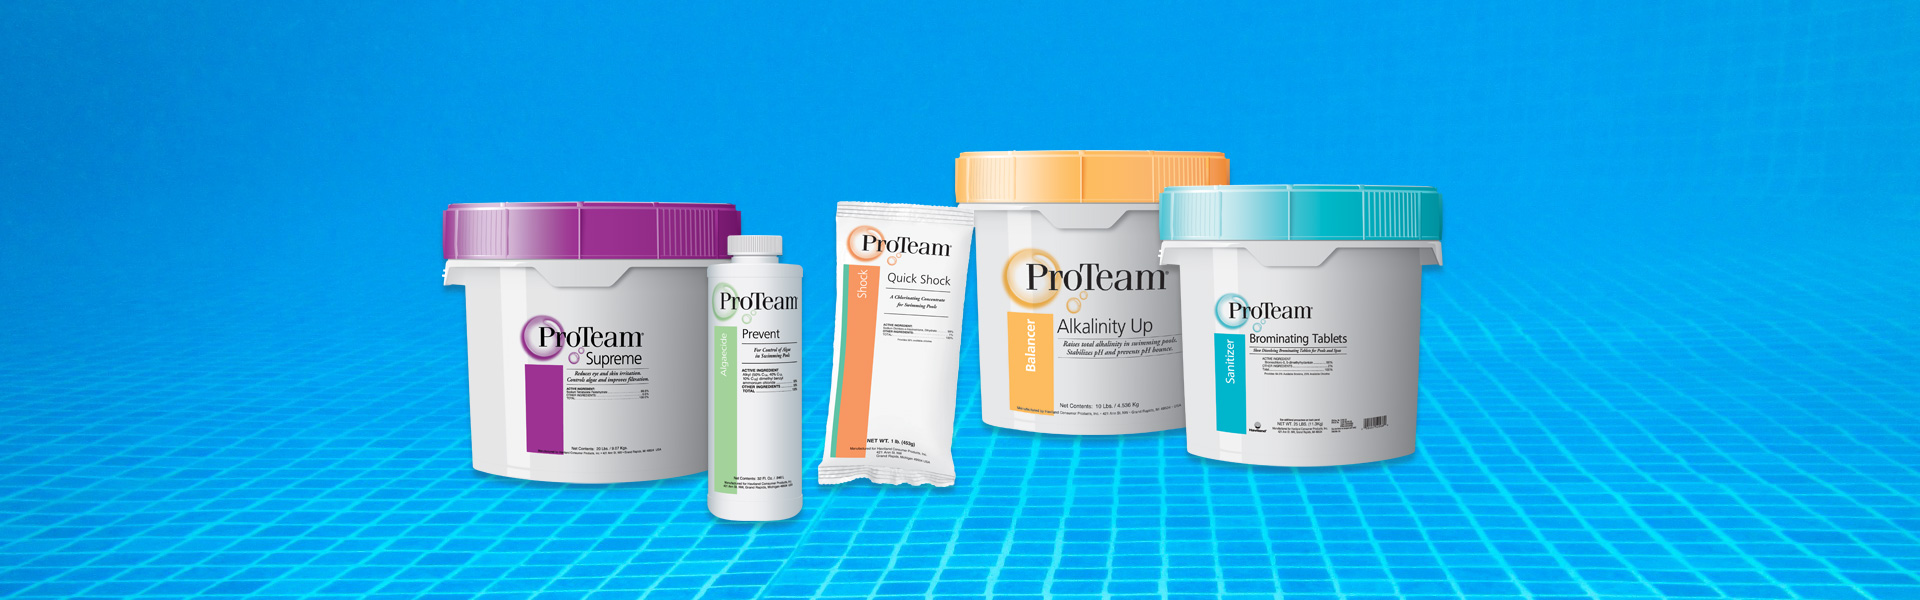 We offer some of the best pool chemicals available, like the line from ProTeam.